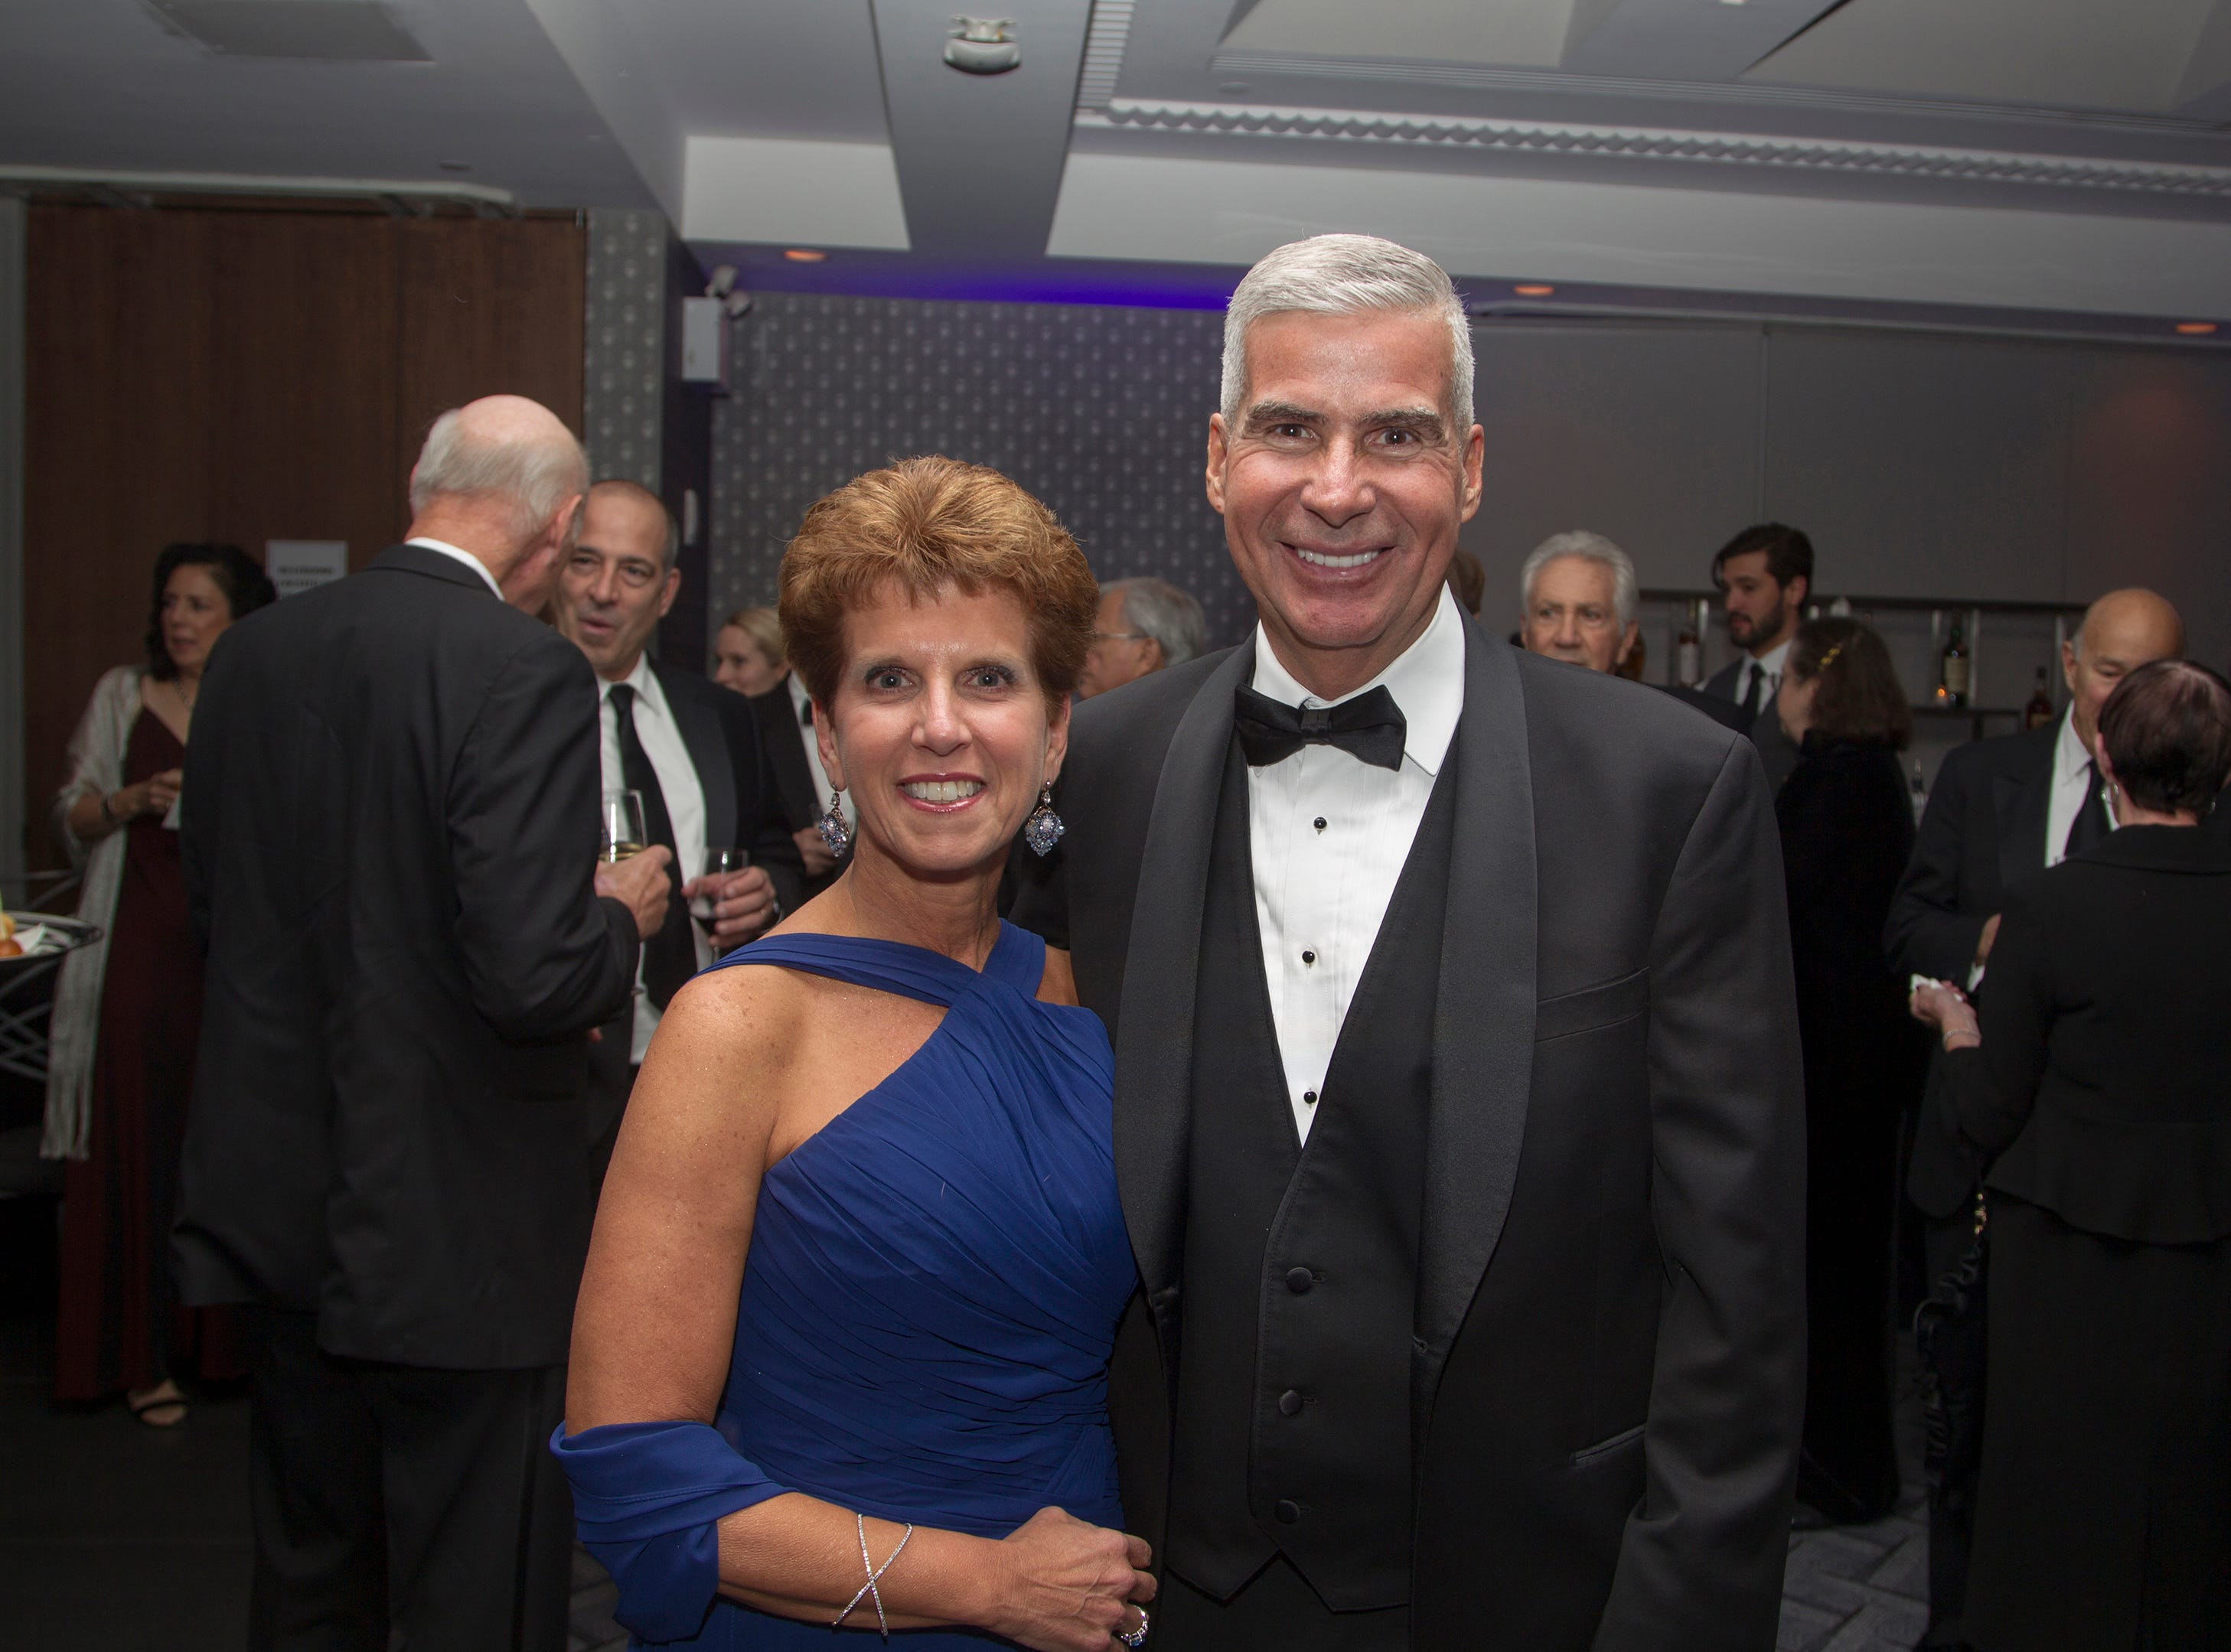 Michele and Michael Acito. Holy Name Medical Center held its 2018 Founders Ball in NYC at Ziegfeld Ballroom. 11/17/2018